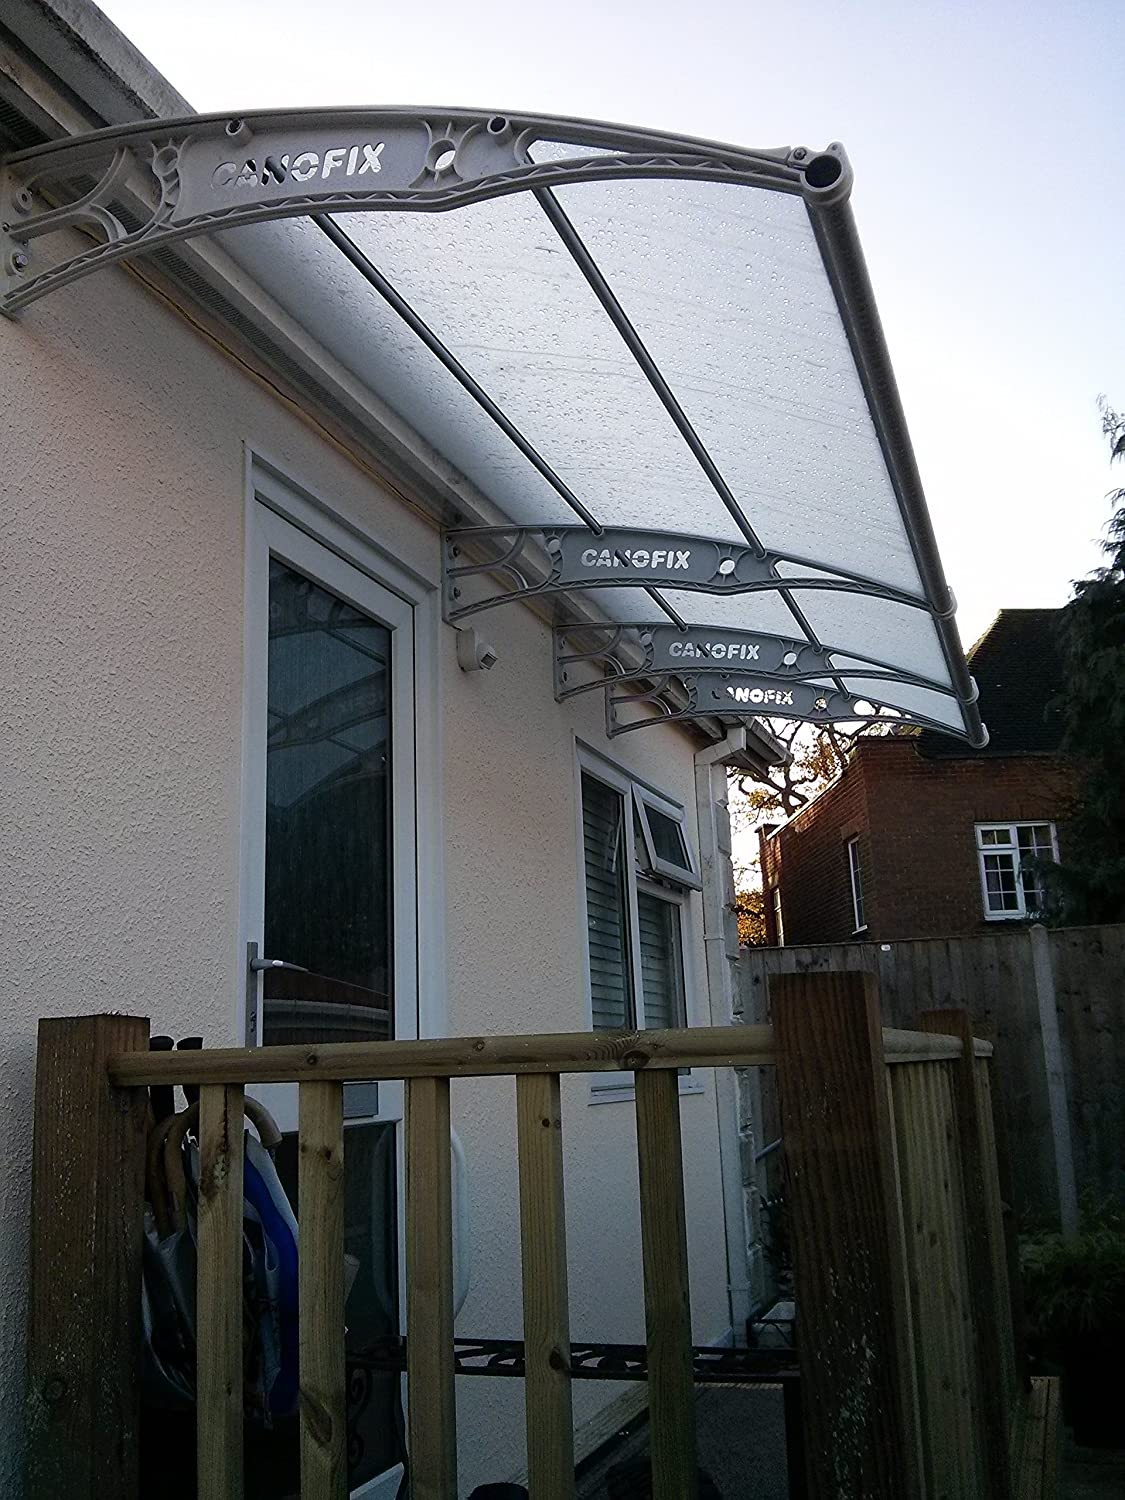 DIY Polycarbonate Cantilever Canofix Canopy 1500x 4000mm/Garden Door Smoking Shelter Walkway Garden Shed Patio (Black or Grey Bracket with Clear ... & DIY Polycarbonate Cantilever Canofix Canopy 1500x 4000mm/Garden ...